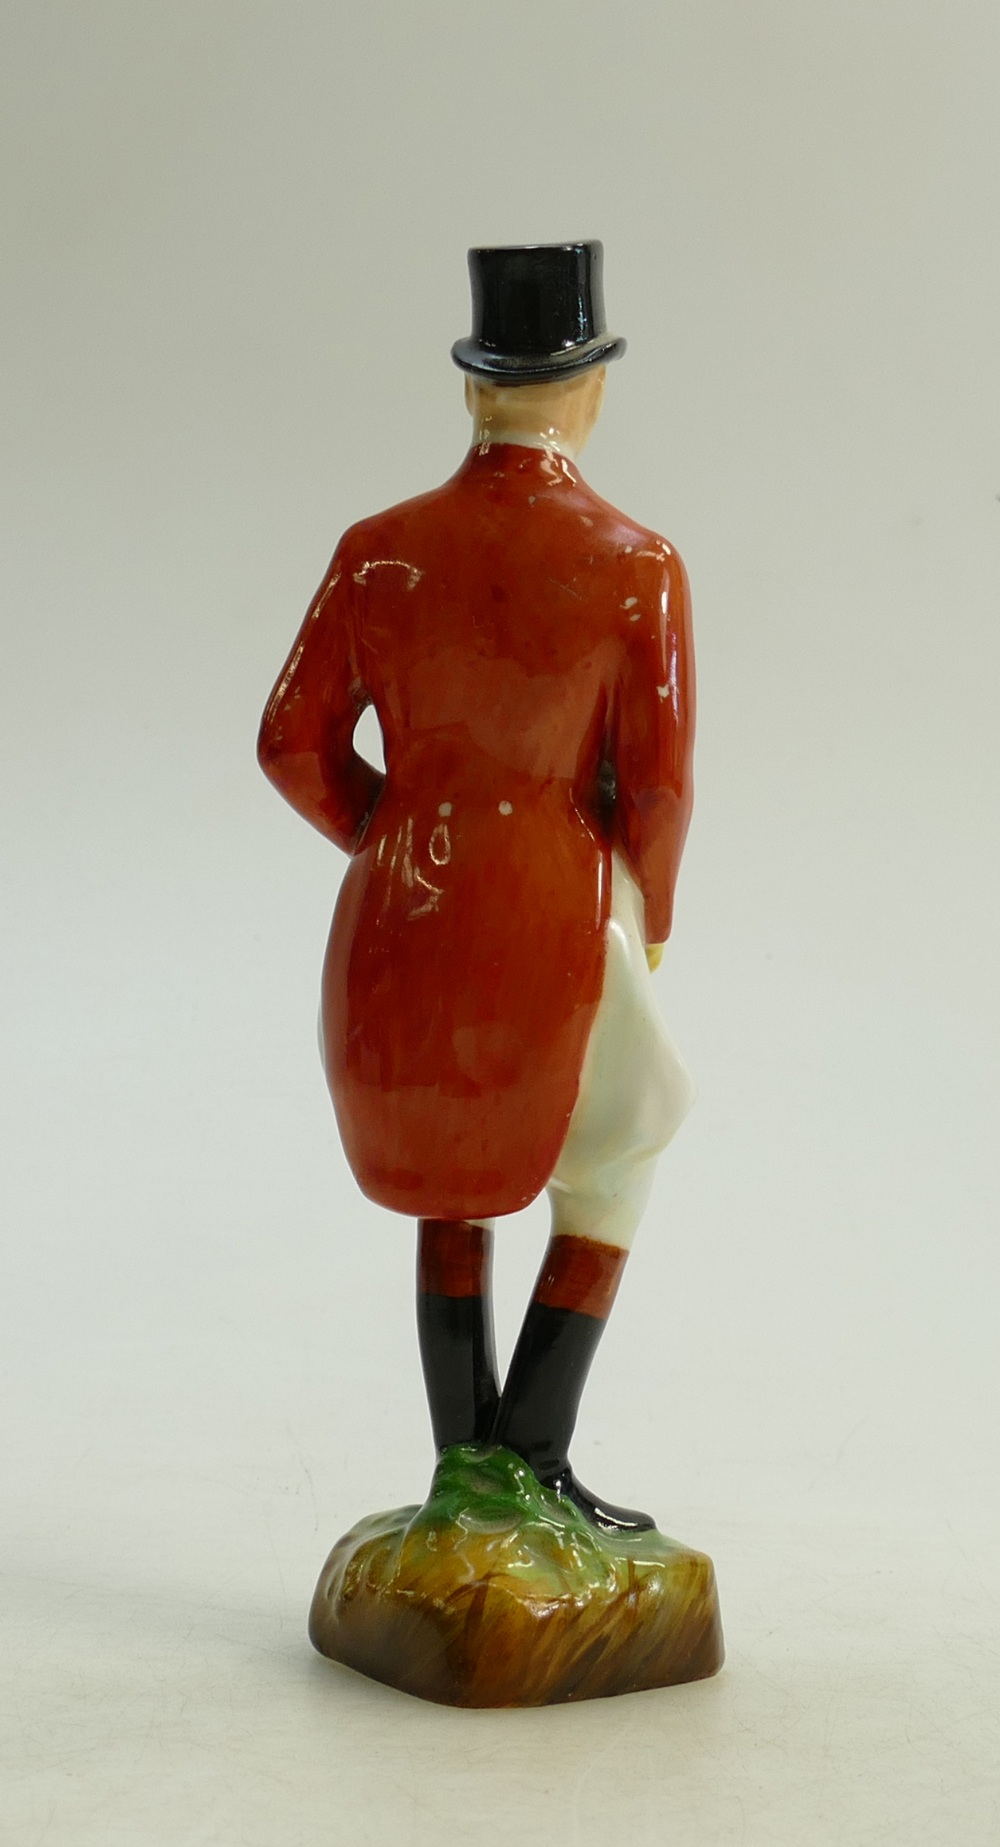 Lot 54 - Royal Doulton figure Prince of Wales HN1217: Dated 1933.